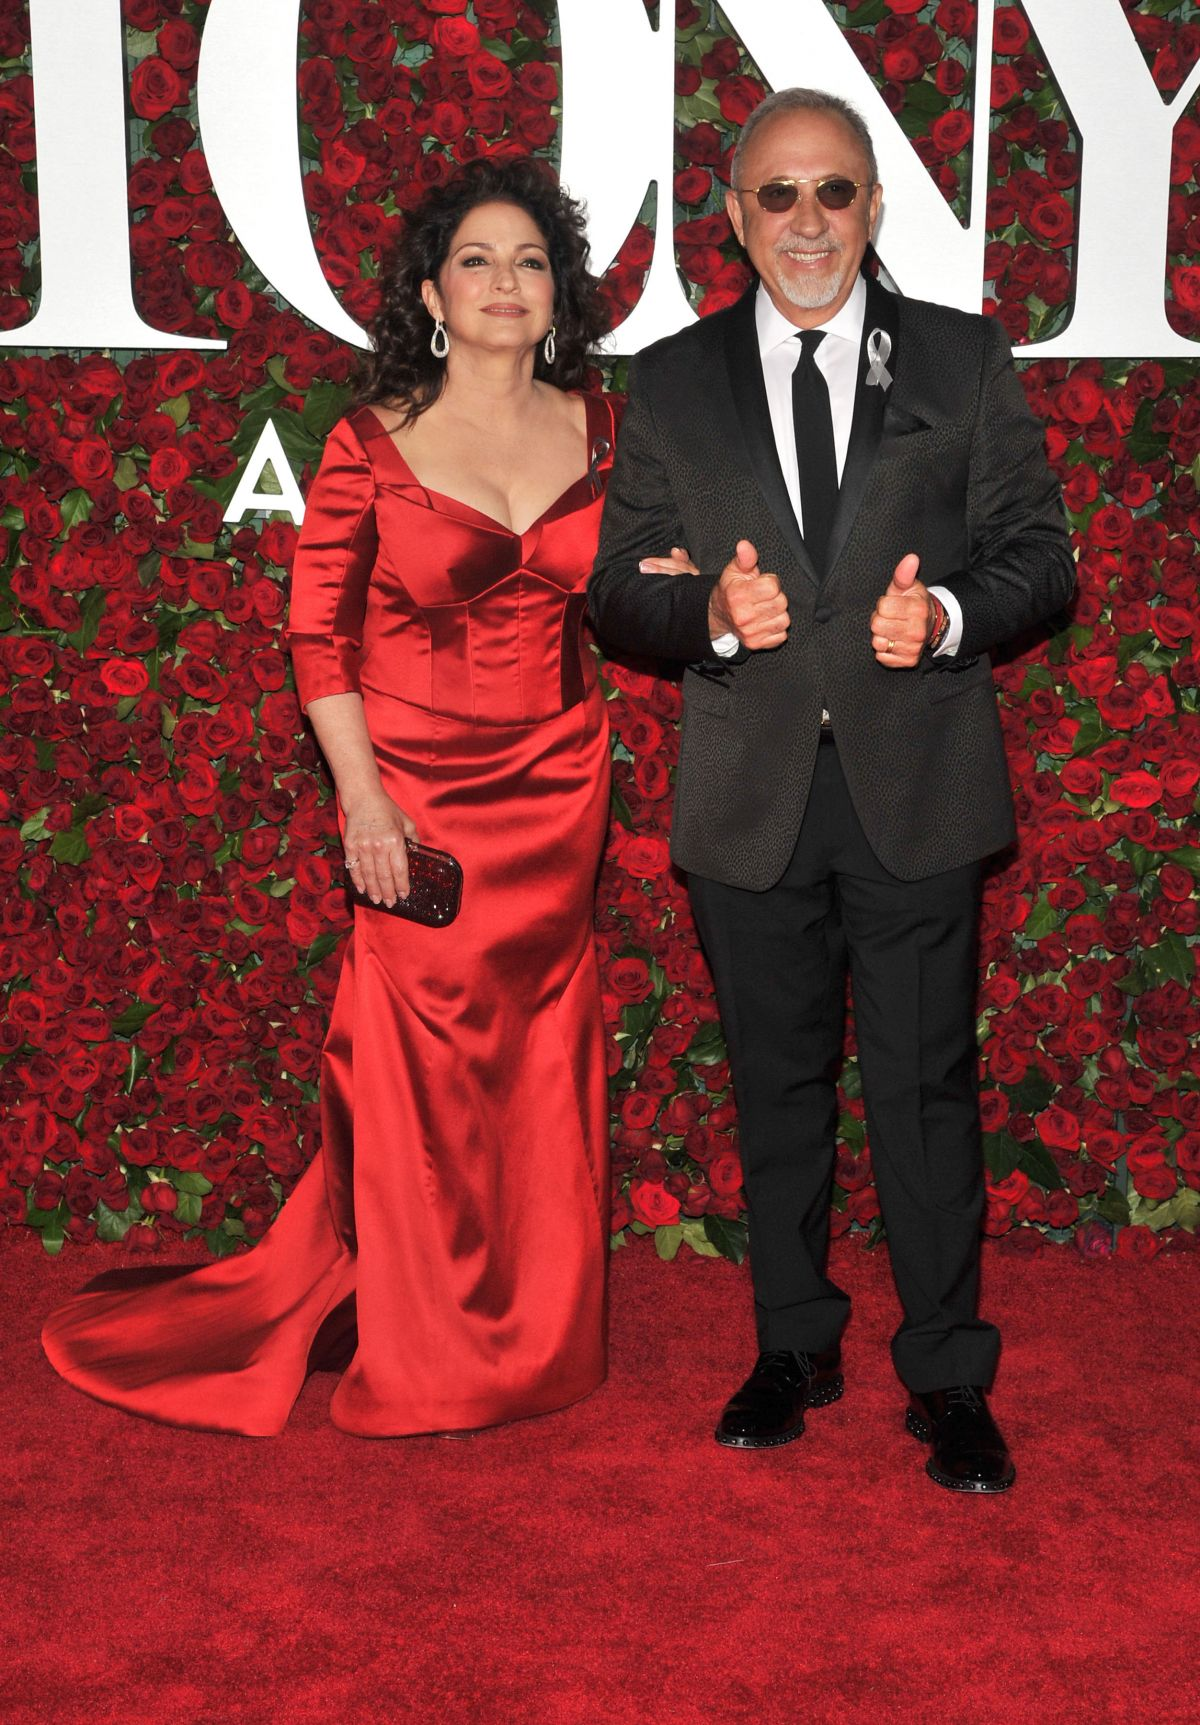 GLORIA ESTEFAN at 70th Annual Tony Awards in New York 06/12/2016